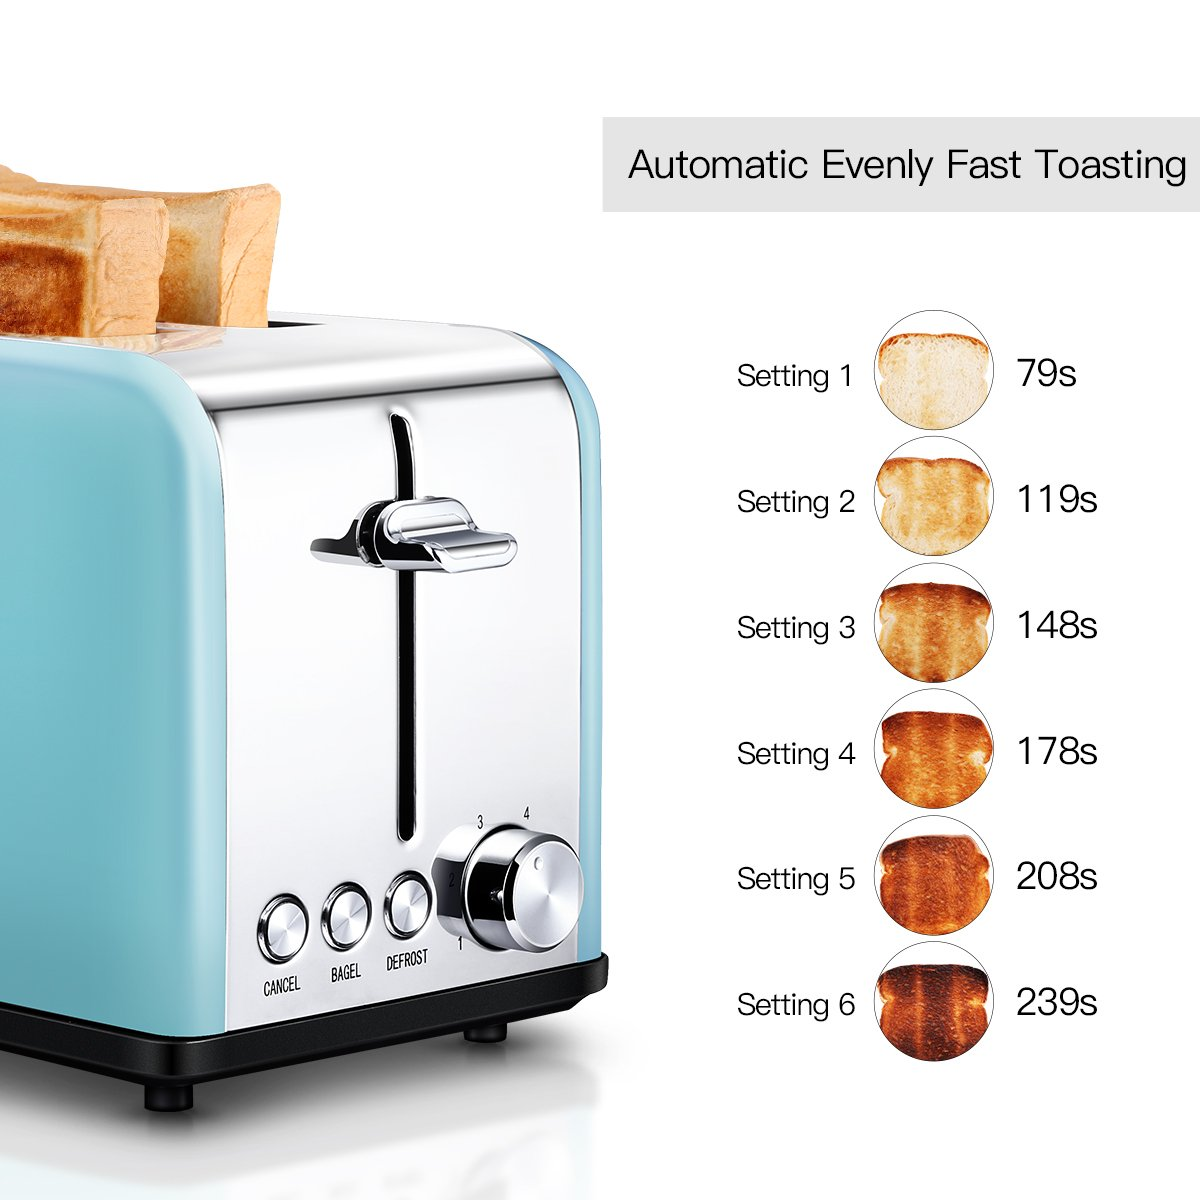 Toaster 2 Slice, Retro Small Toaster with Bagel, Cancel, Defrost Function, Extra Wide Slot Compact Stainless Steel Toasters for Bread Waffles, Blue by Keemo (Image #5)